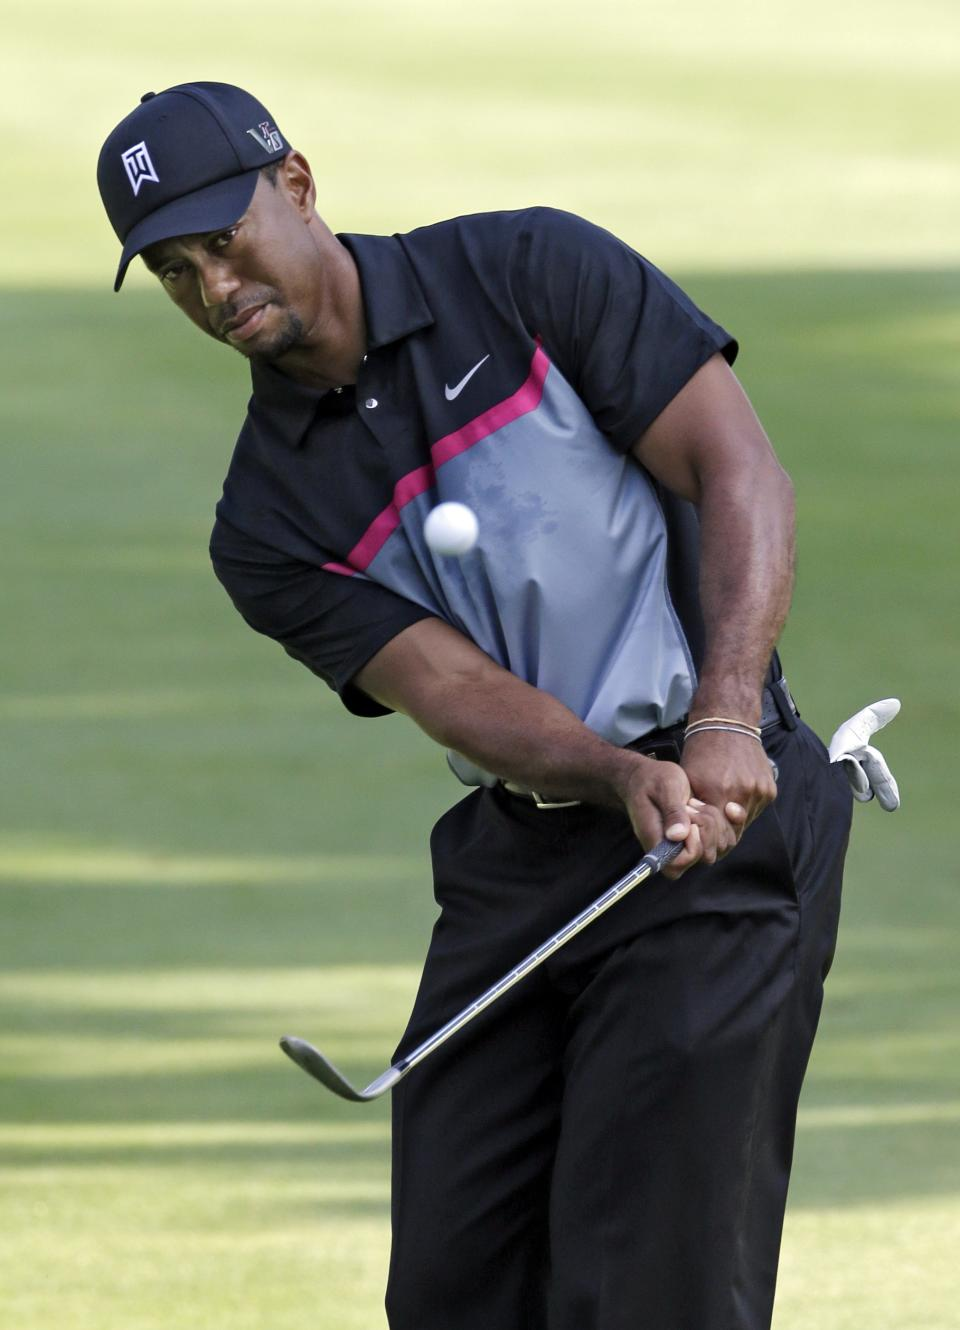 Tiger Woods chips to the 11th green during the first round of the Bridgestone Invitational golf tournament Thursday, Aug. 1, 2013 at Firestone Country Club in Akron, Ohio. (AP Photo/Mark Duncan)